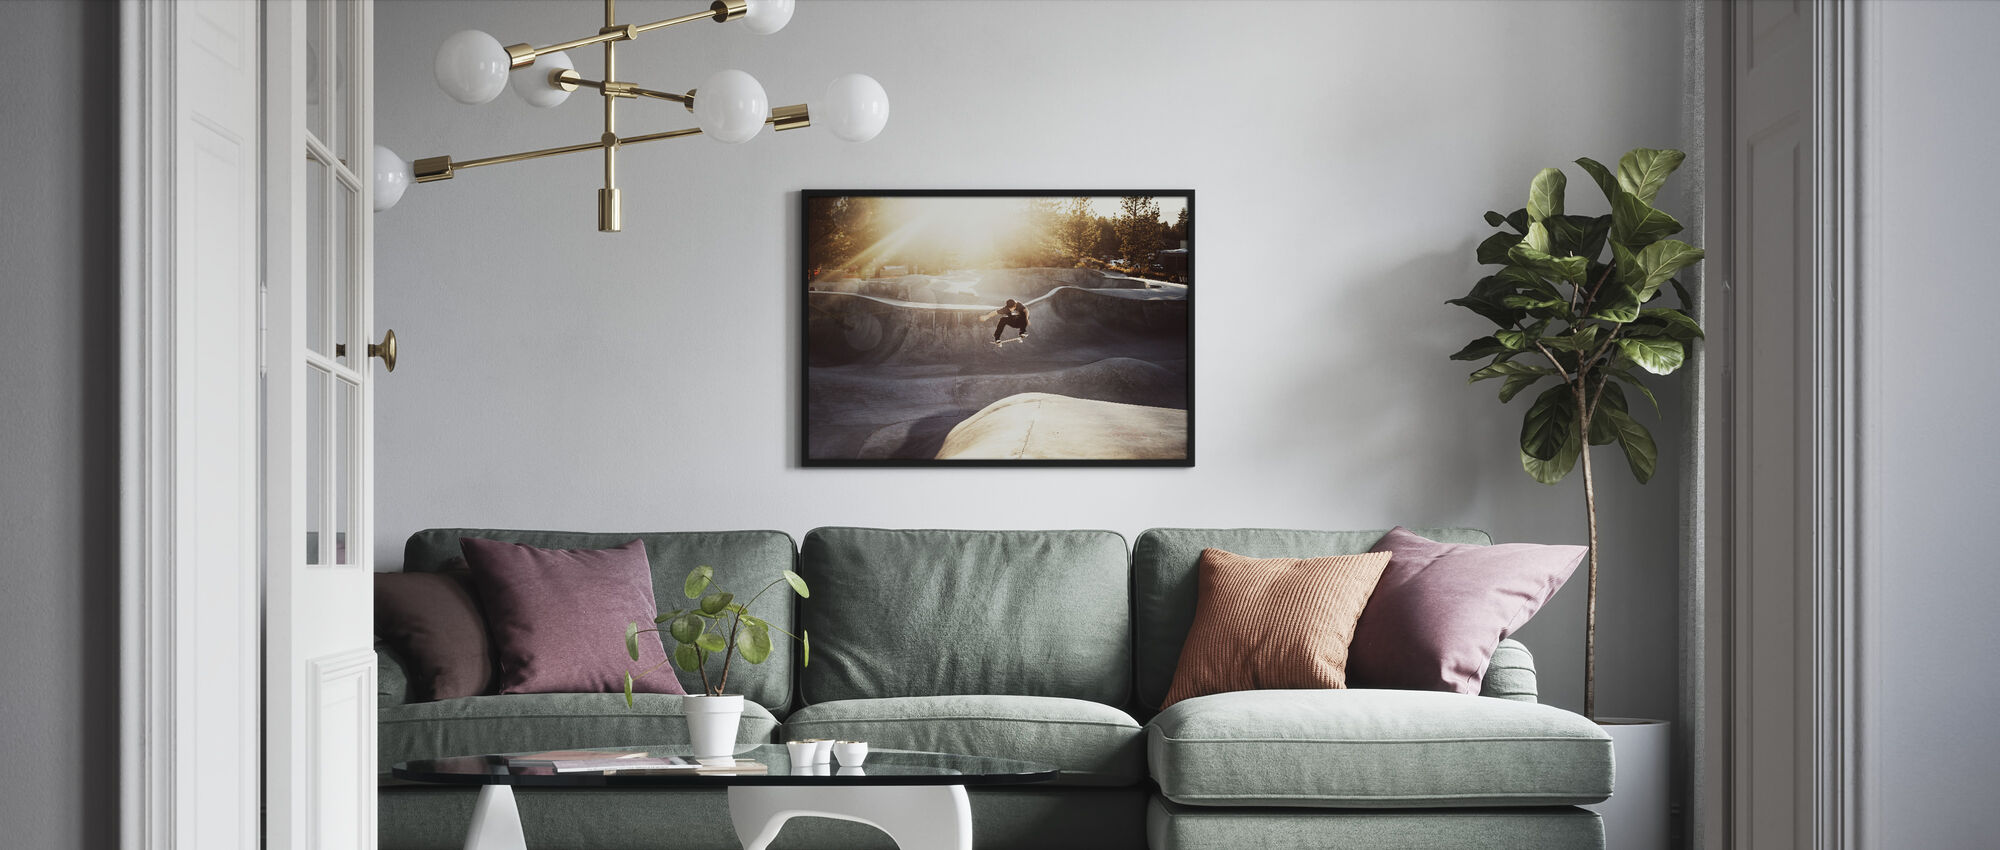 Skateboard Park - Framed print - Living Room